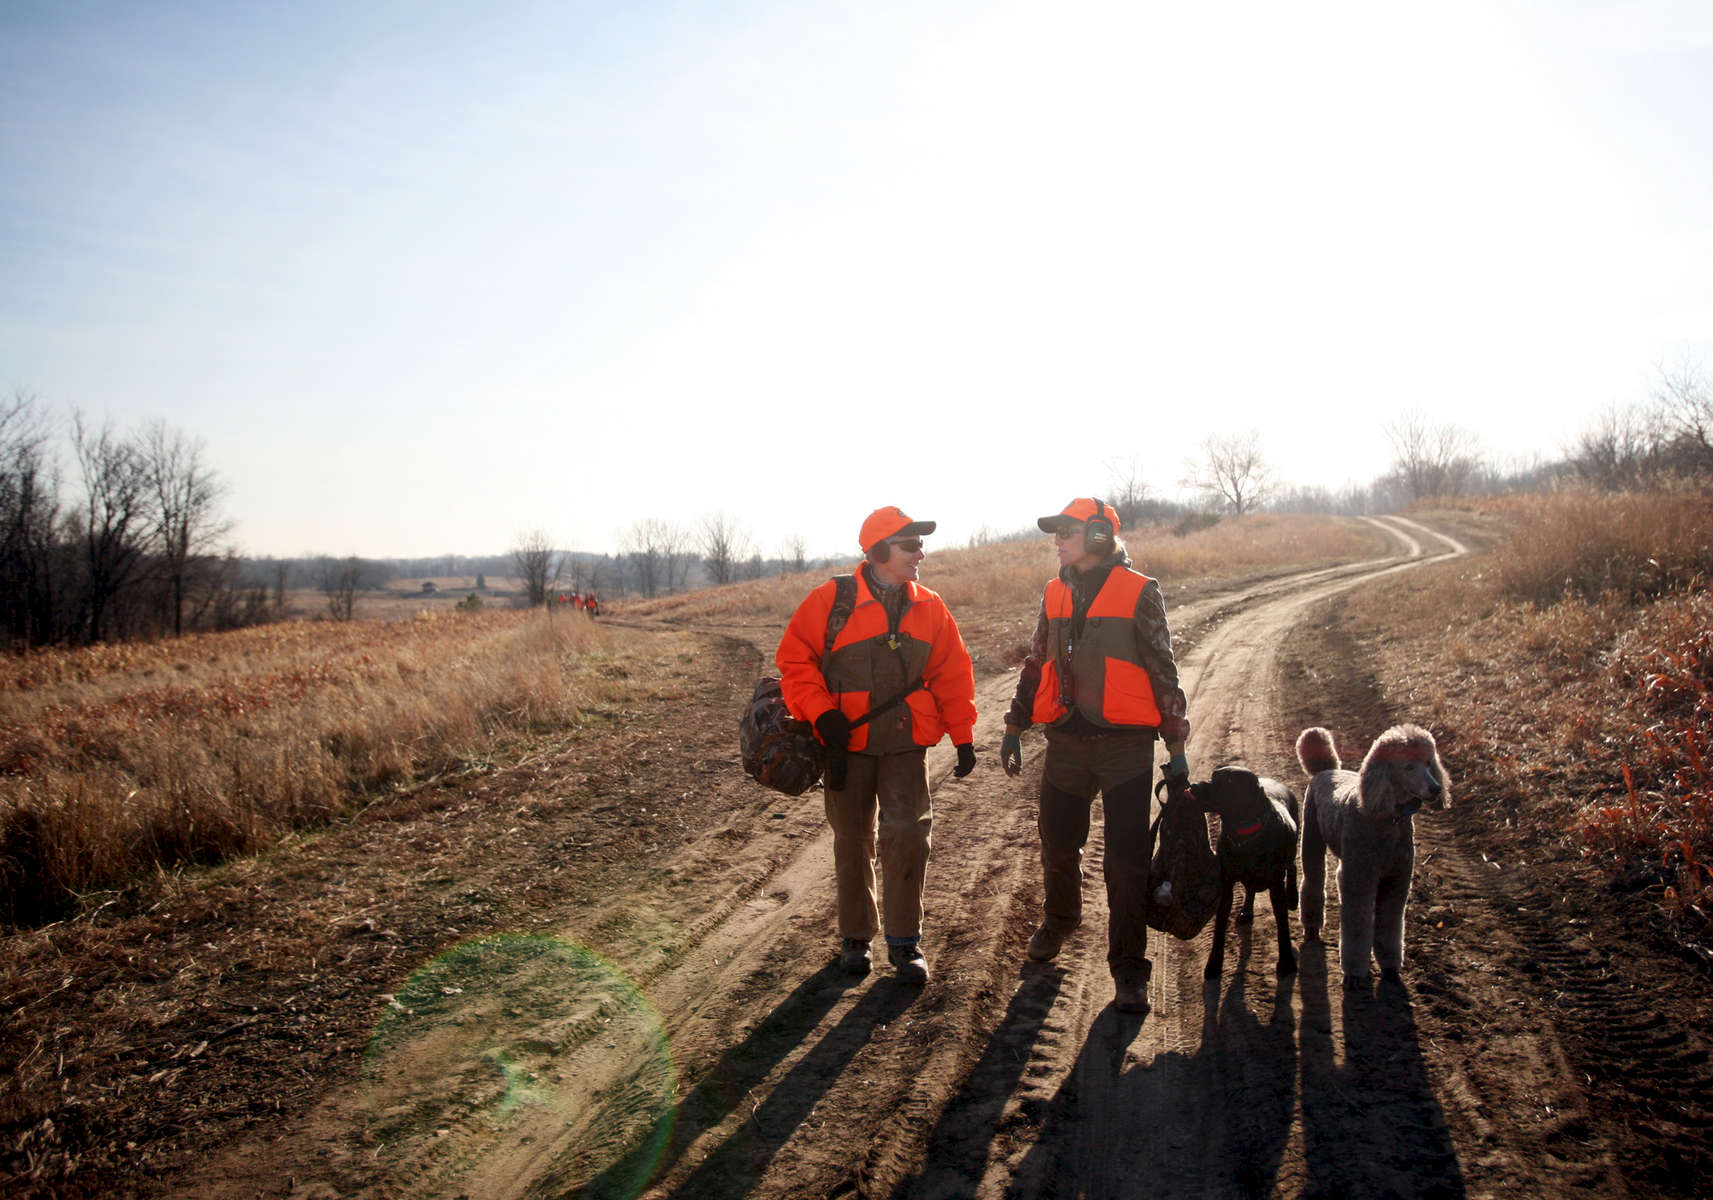 Lin Gelbmann, left, and Libbe Erickson attend a hunt at the Minnesota Horse and Hunt Club in Prior Lake with their dogs, including Mynx, a black lab, and Cache, a poodle. Gelbmann and Erickson have both been hunting with their poodles for years.